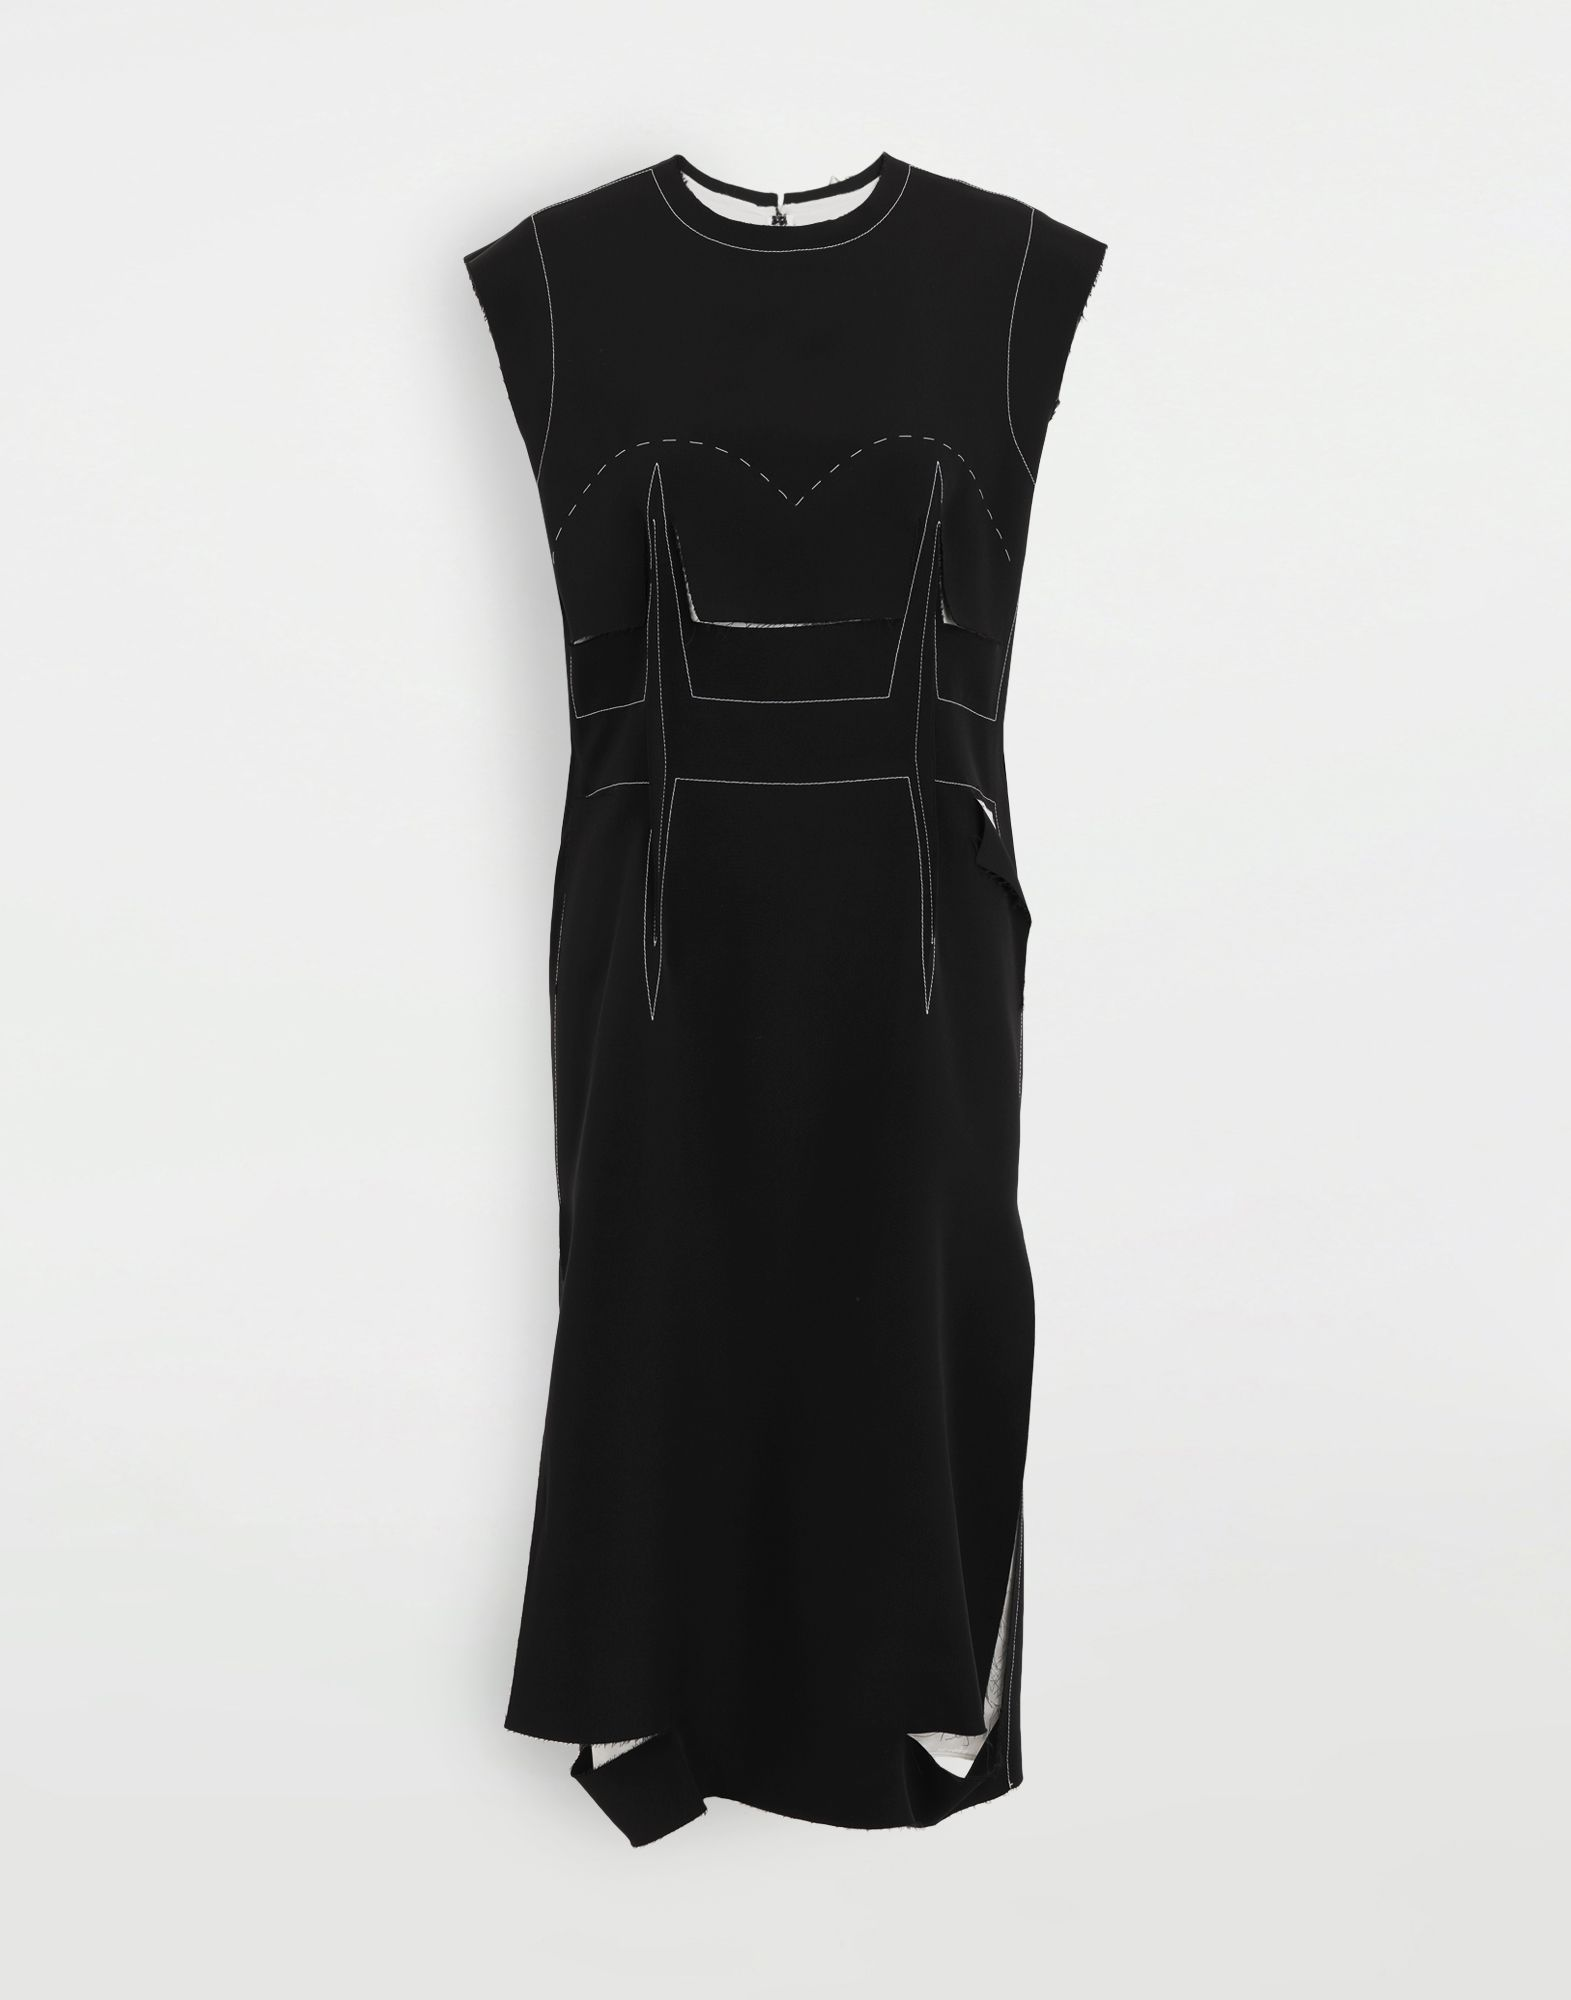 MAISON MARGIELA Décortiqué embroidered dress 3/4 length dress Woman f